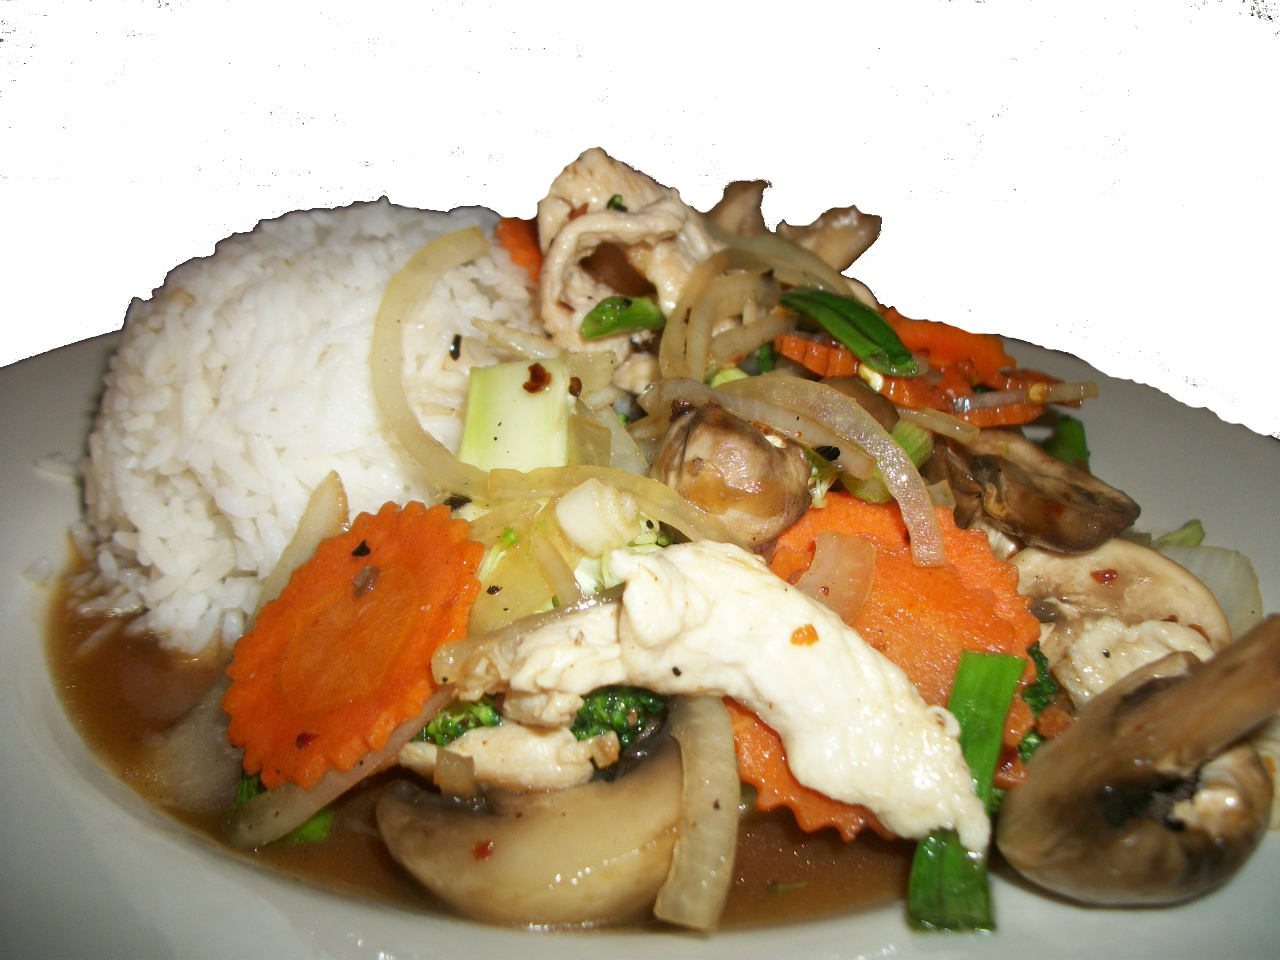 5. Khao Rad Na Khai (Steamed rice and chicken breast) - $8.45